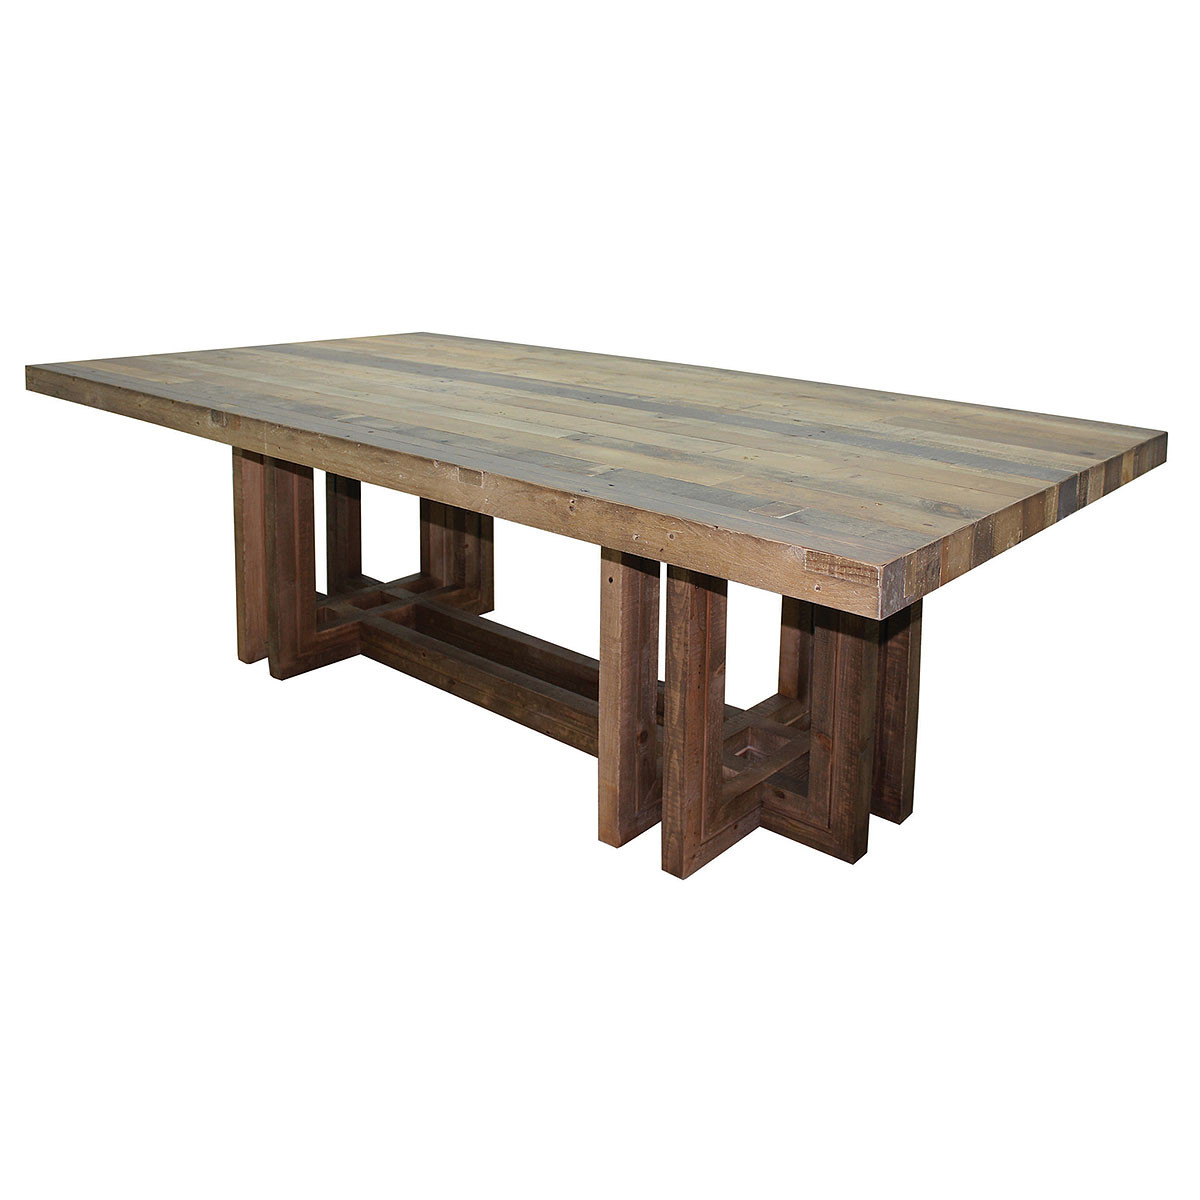 angora dining table 95 modern reclaimed wood tables zin home